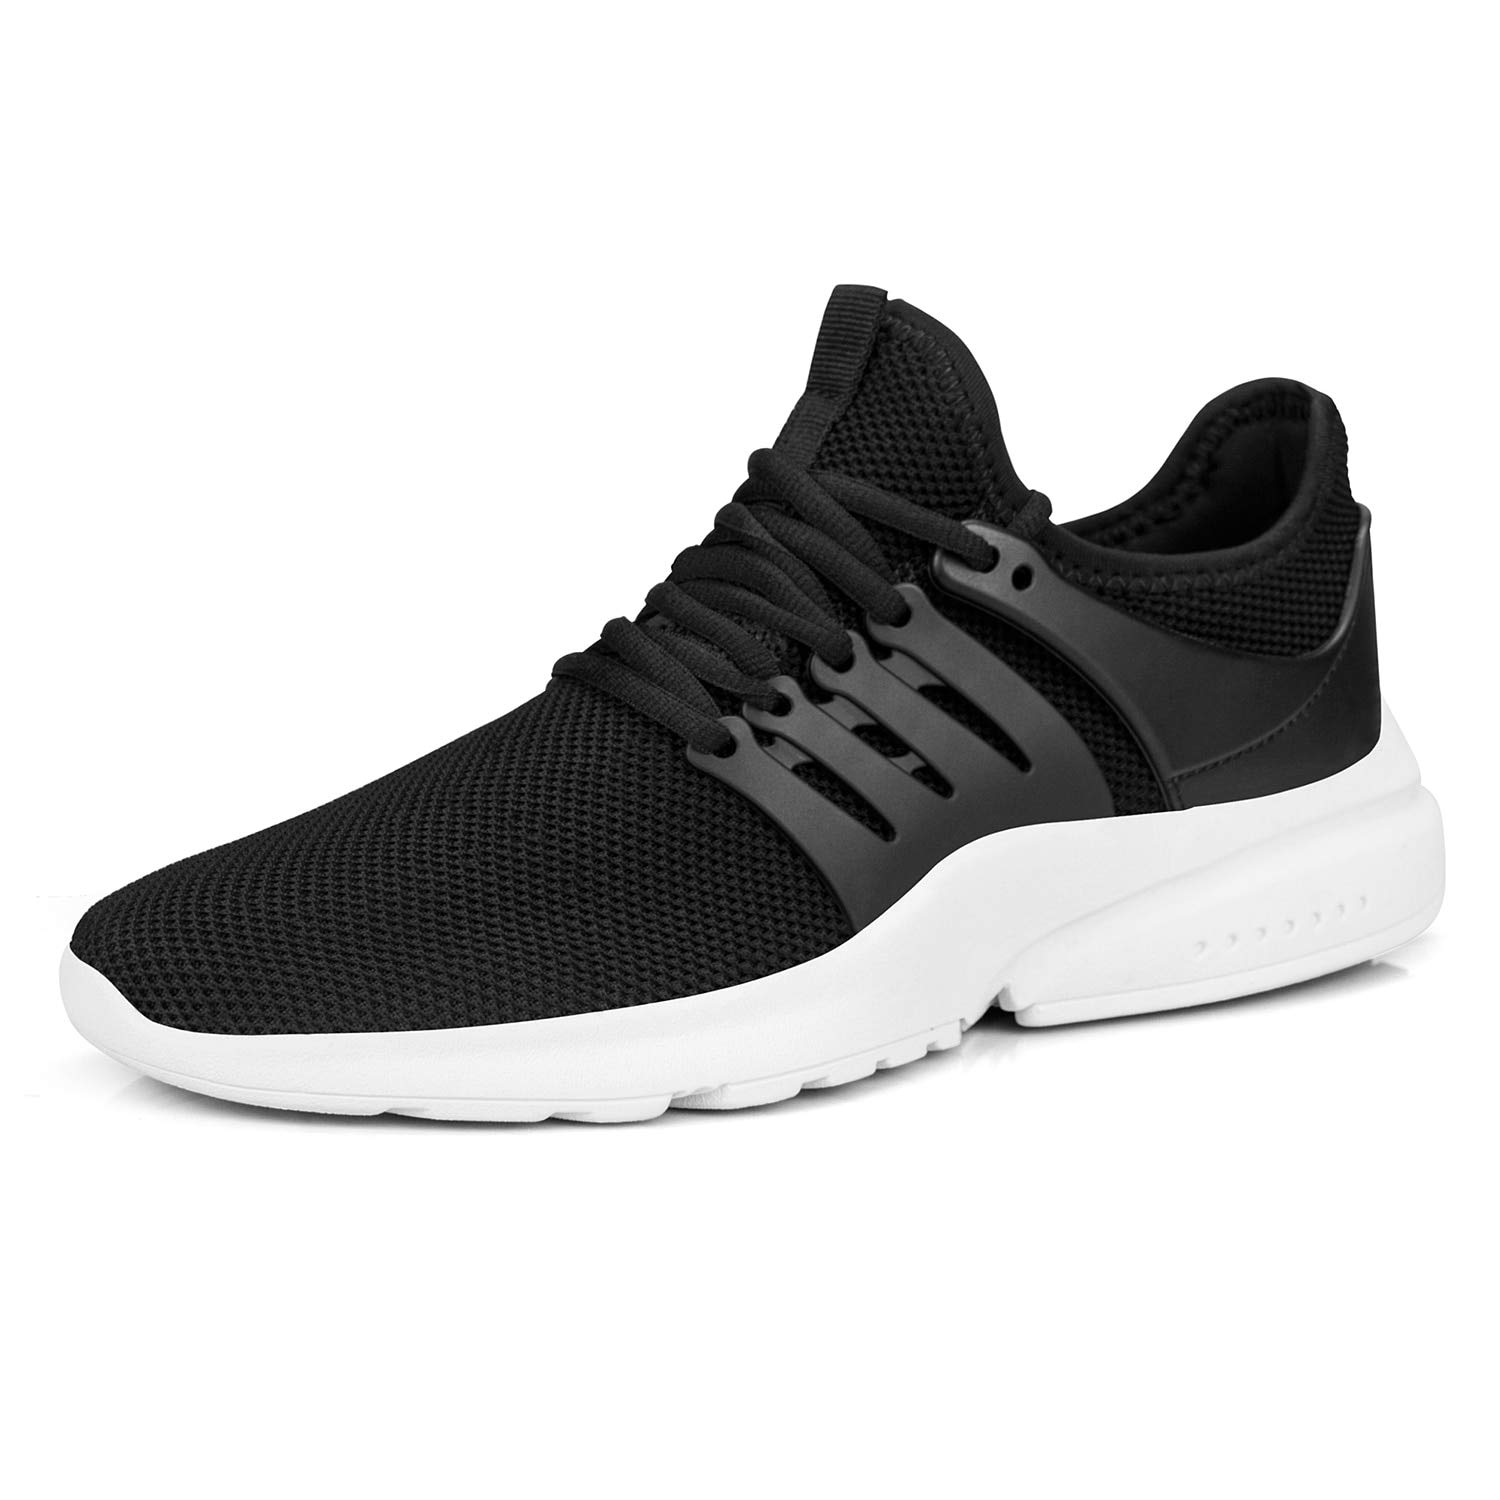 Feetmat Mens Workout Training Sneakers Fashion Outdoor Walking Shoes Breathable Mesh Super Light Black White 6M by Feetmat